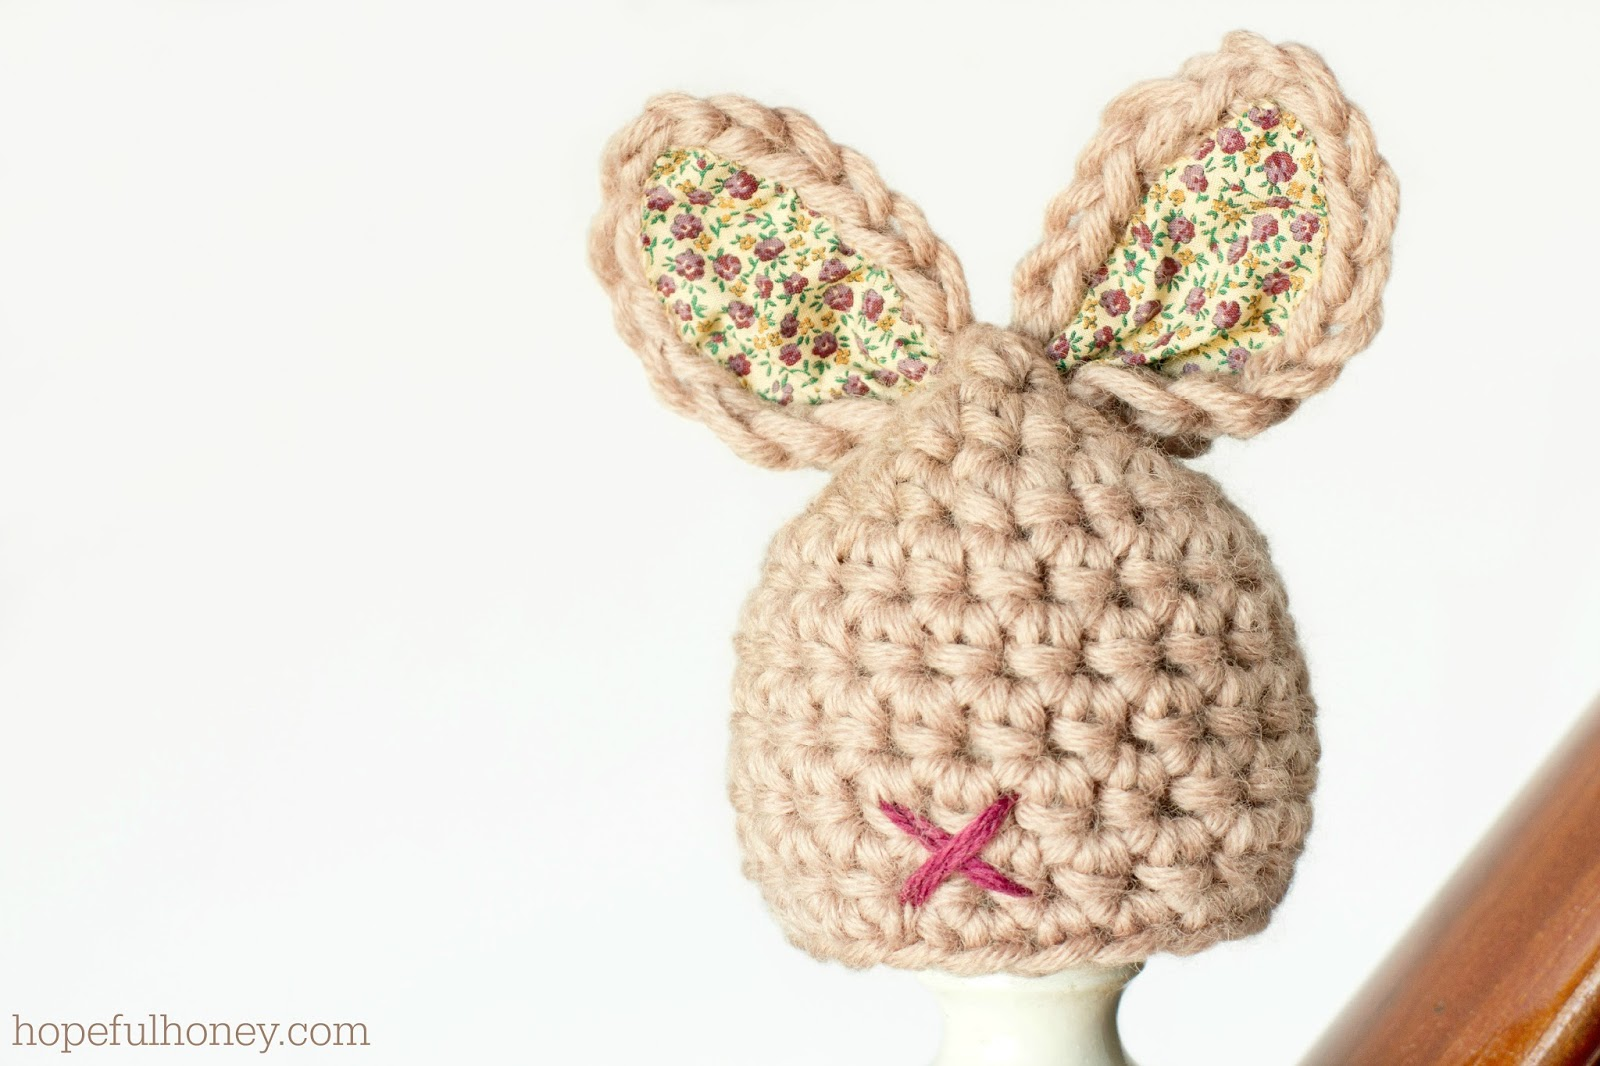 Crochet Pattern For Newborn Bunny Hat : Hopeful Honey Craft, Crochet, Create: Newborn Bunny Hat ...